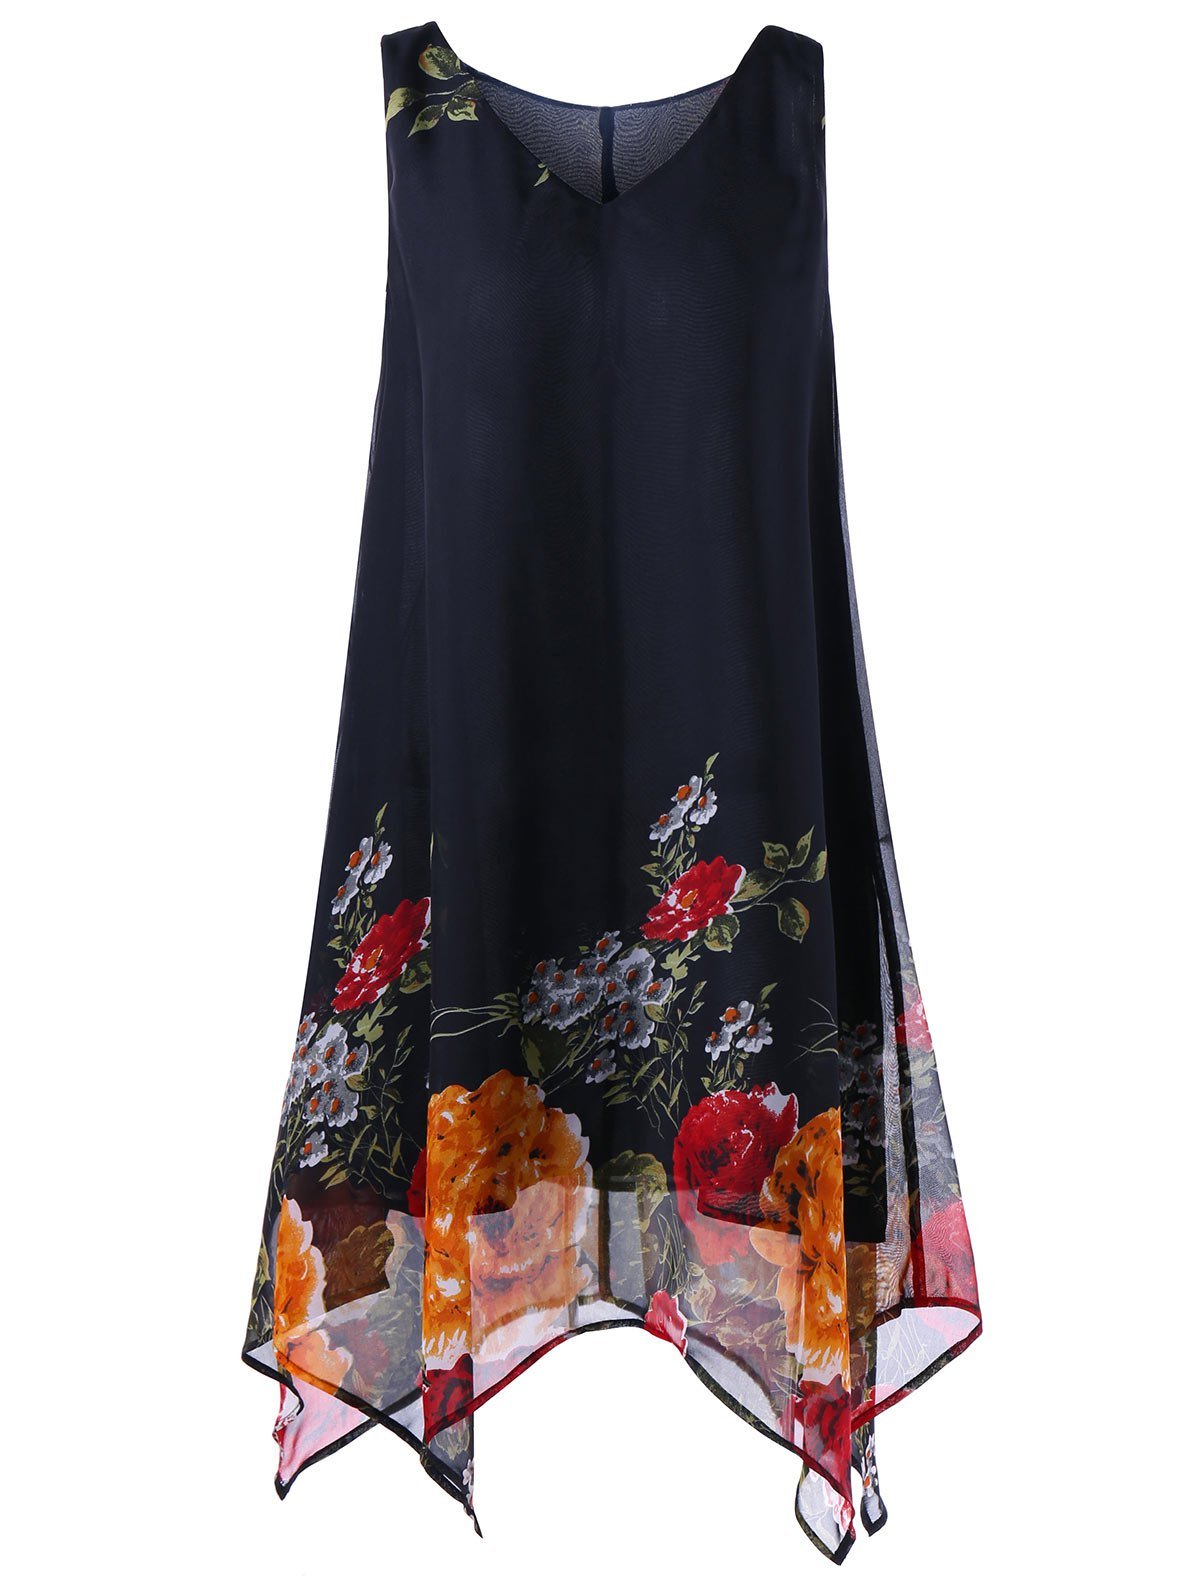 A Line Tunic V Neck Floral Plus Size Handkerchief DressWOMEN<br><br>Size: 4XL; Color: BLACK; Style: Brief; Material: Polyester; Silhouette: A-Line; Dresses Length: Knee-Length; Neckline: V-Neck; Sleeve Length: Sleeveless; Pattern Type: Floral; With Belt: No; Season: Summer; Weight: 0.2600kg; Package Contents: 1 x Dress;